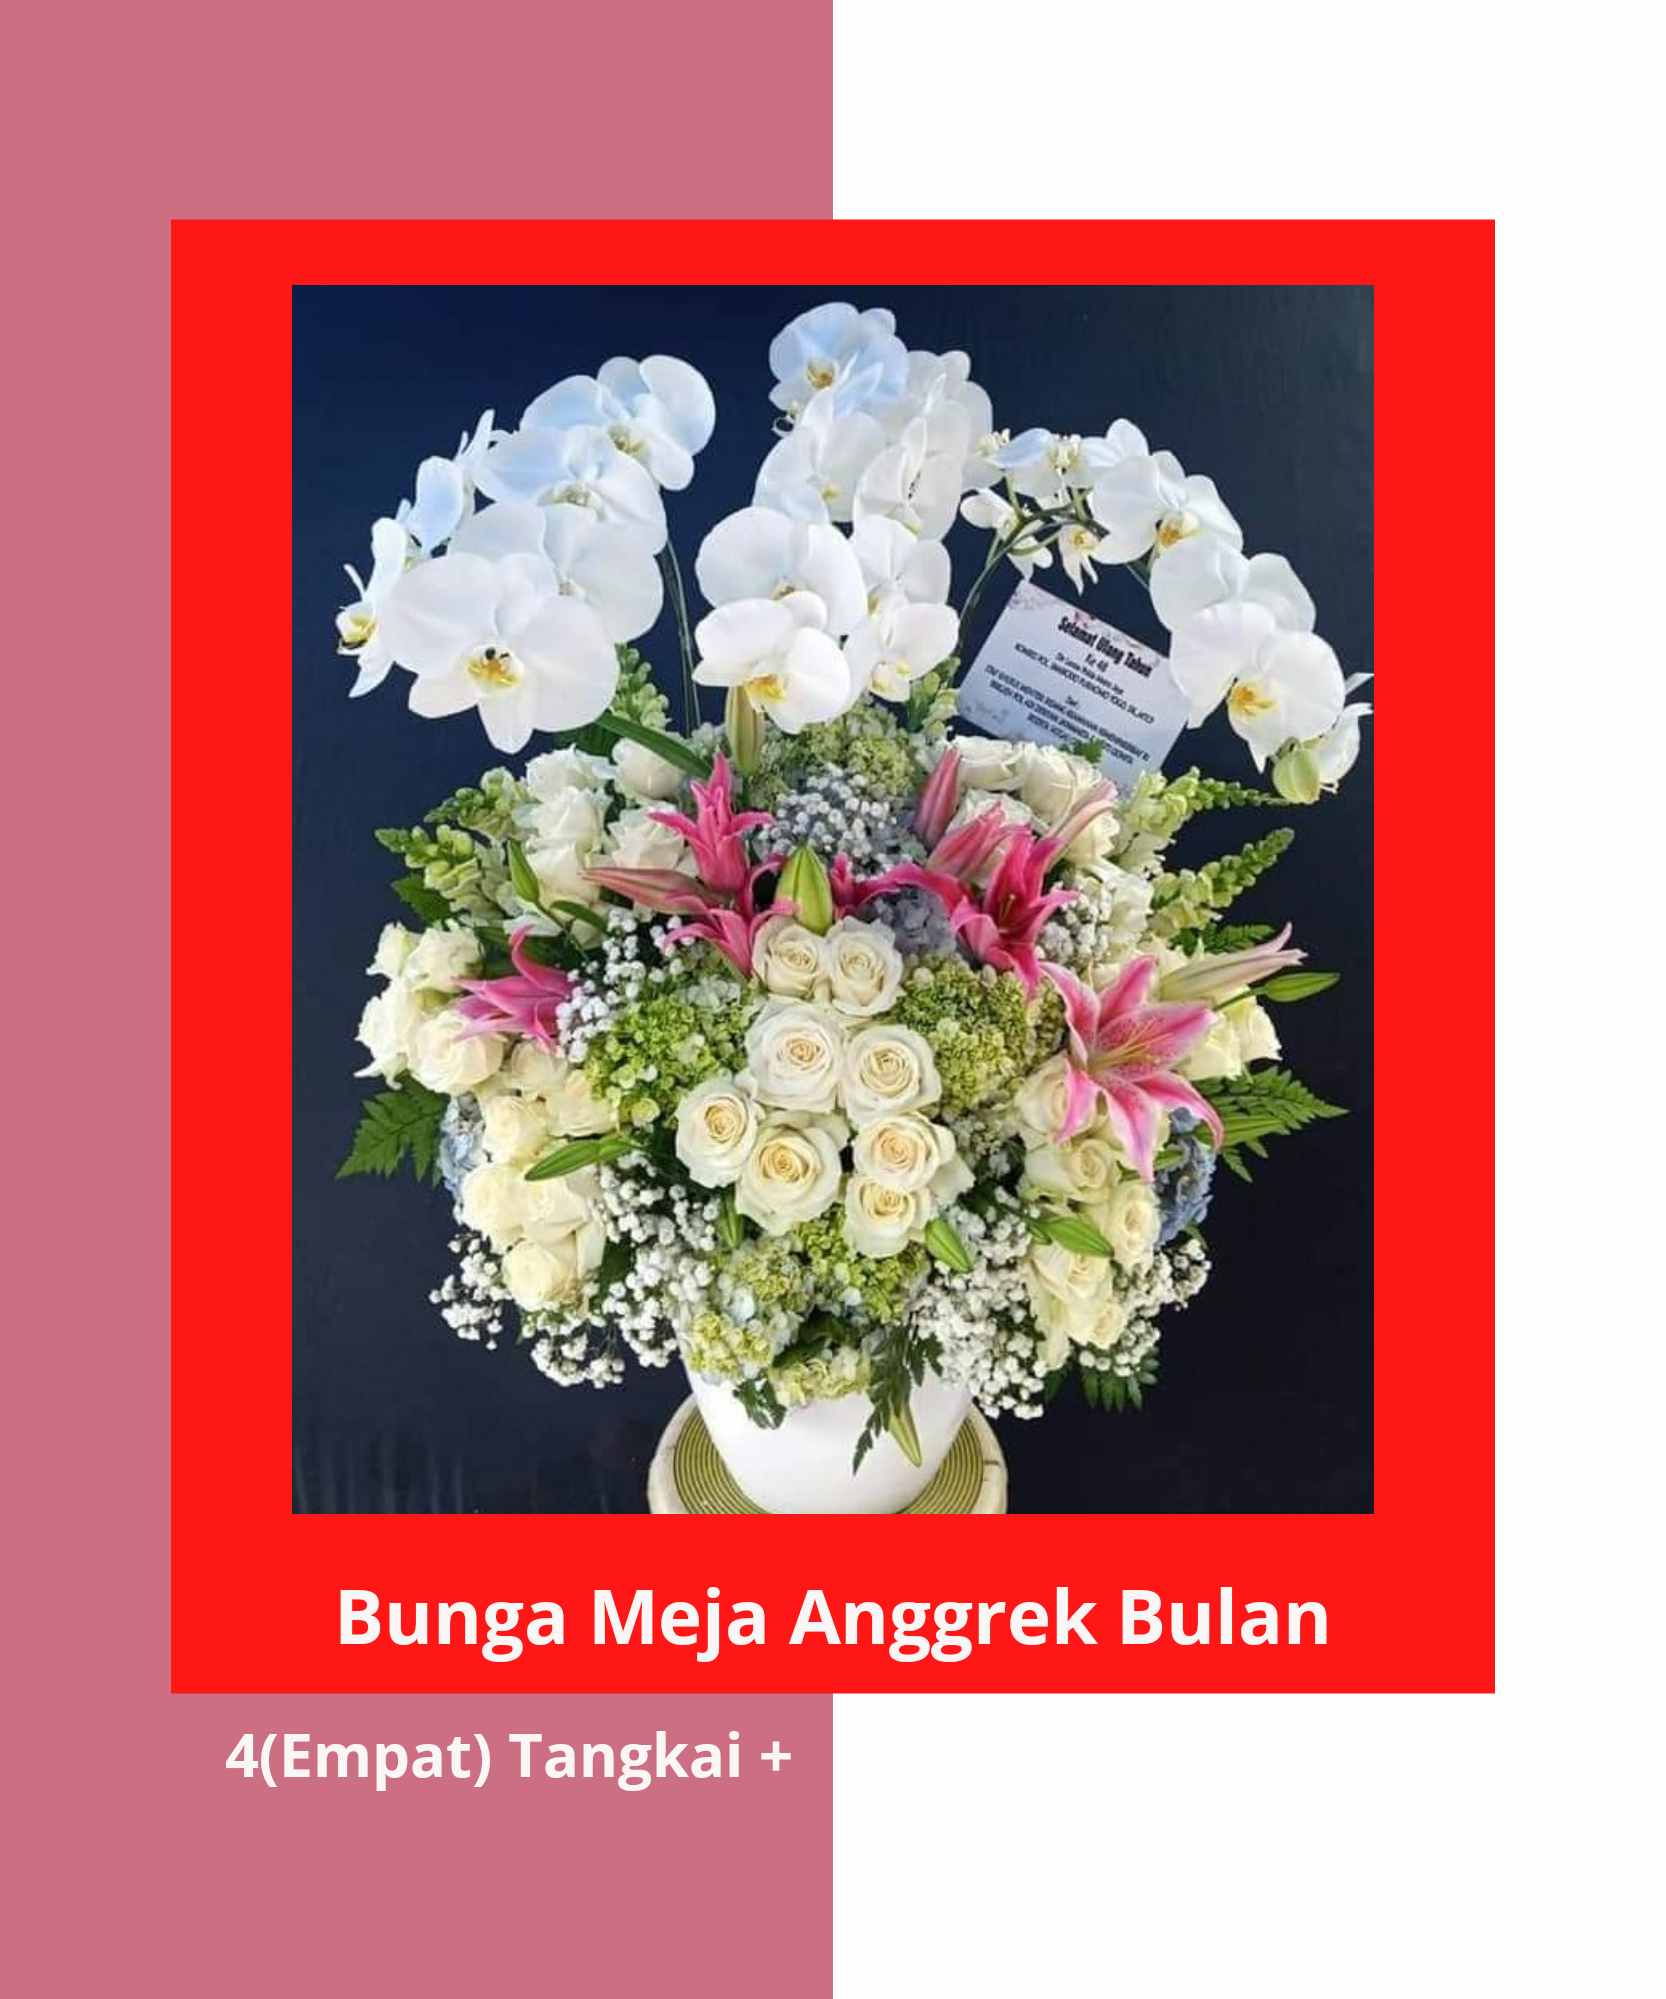 https://finazflorist.com/uploads/bunga%20(1).jpeg